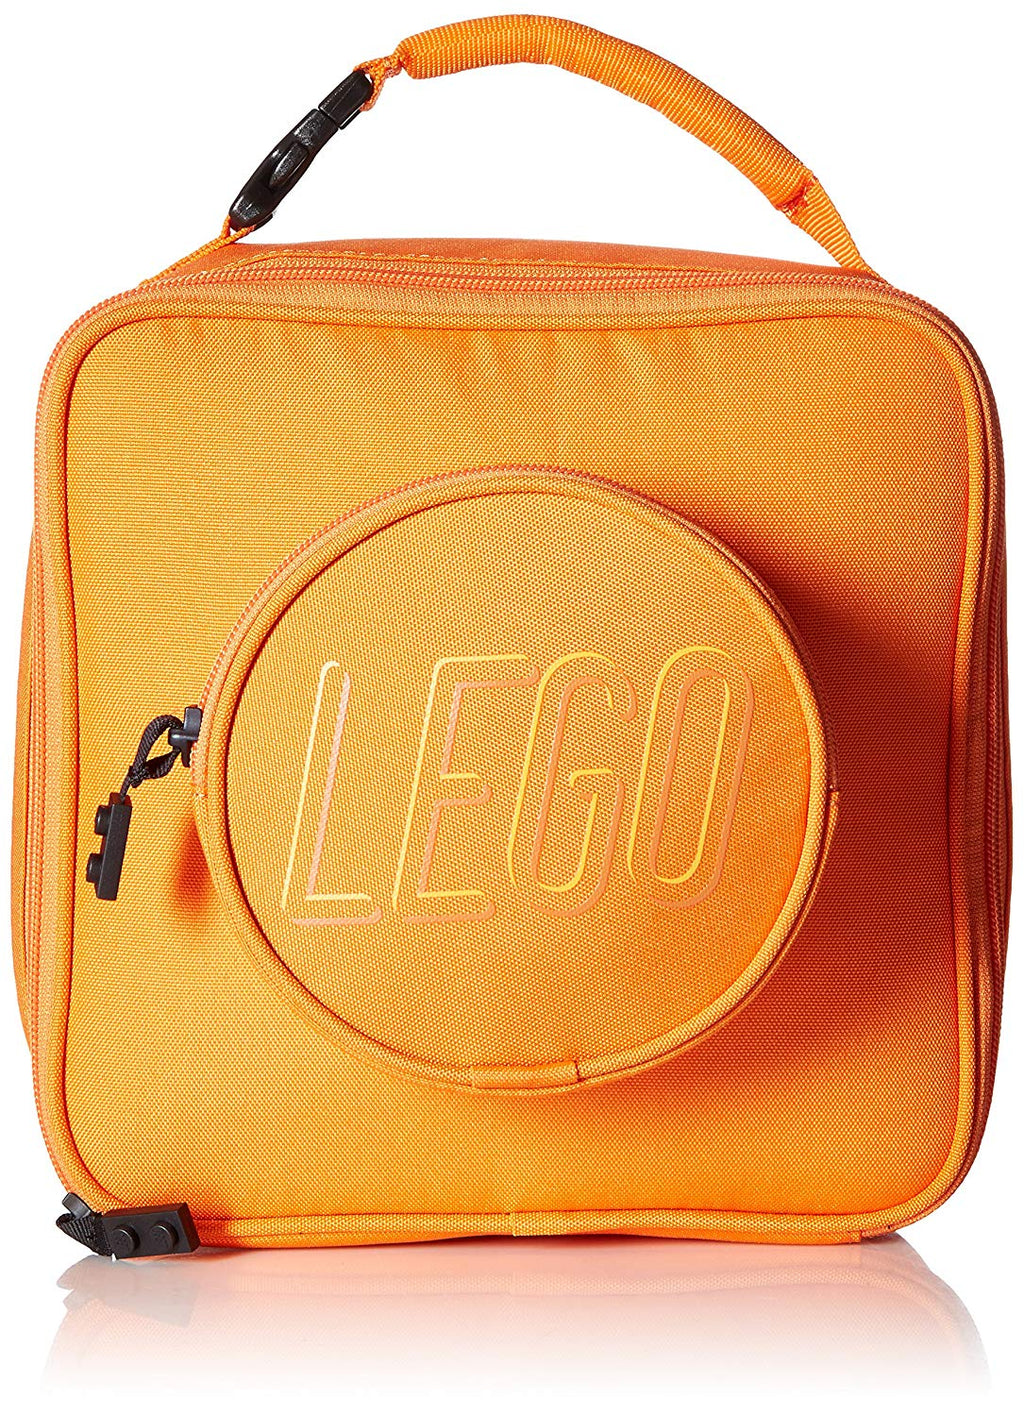 LEGO Brick Lunch, Orange